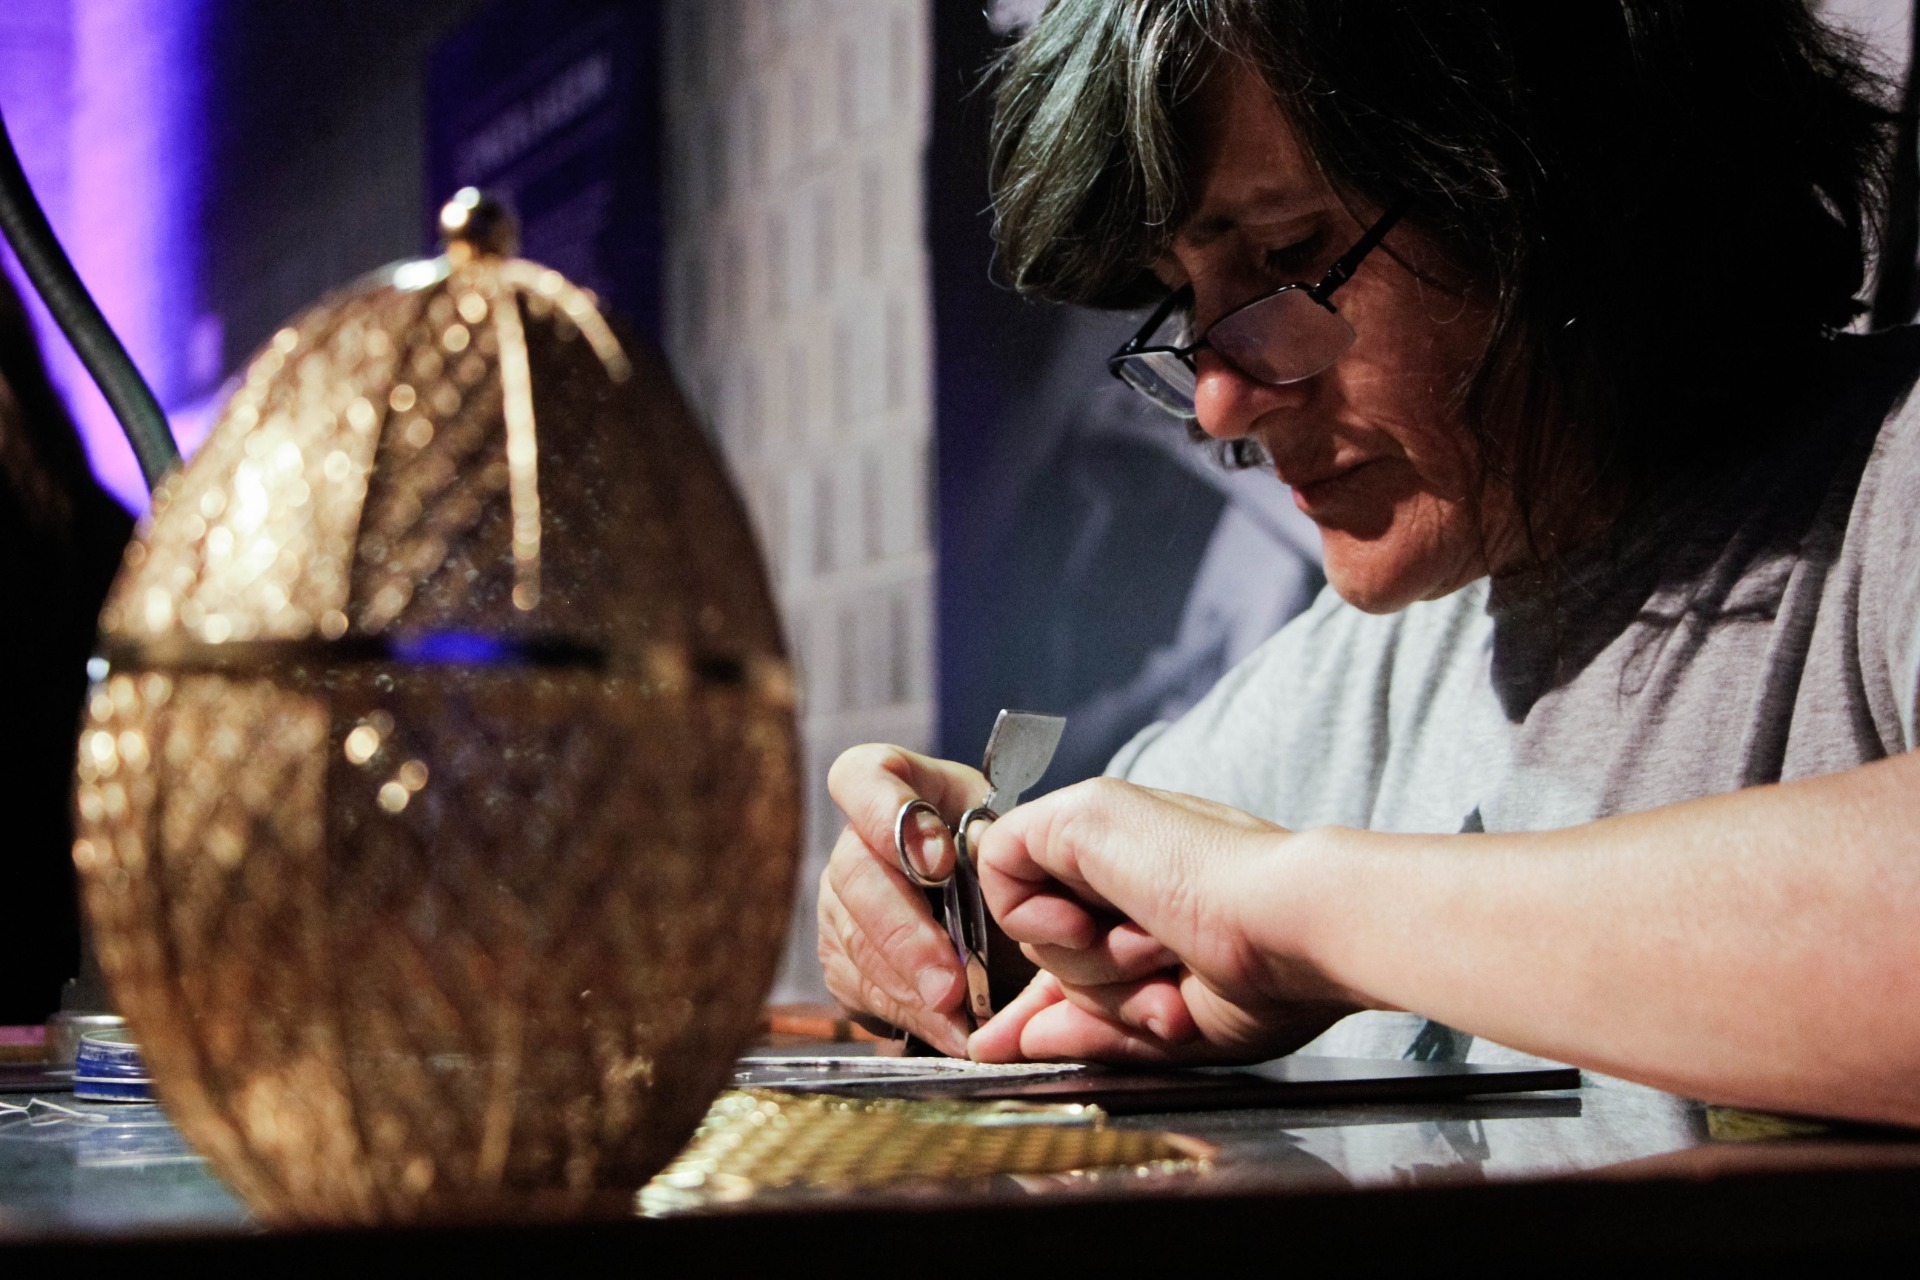 Everything That Happened in The Luxury Design & Craftsmanship Summit luxury design craftsmanship summit Everything That Happened in The Luxury Design & Craftsmanship Summit Celebrating Craftsmanship The Luxury DesignCraftsmanship Summit 2019 11